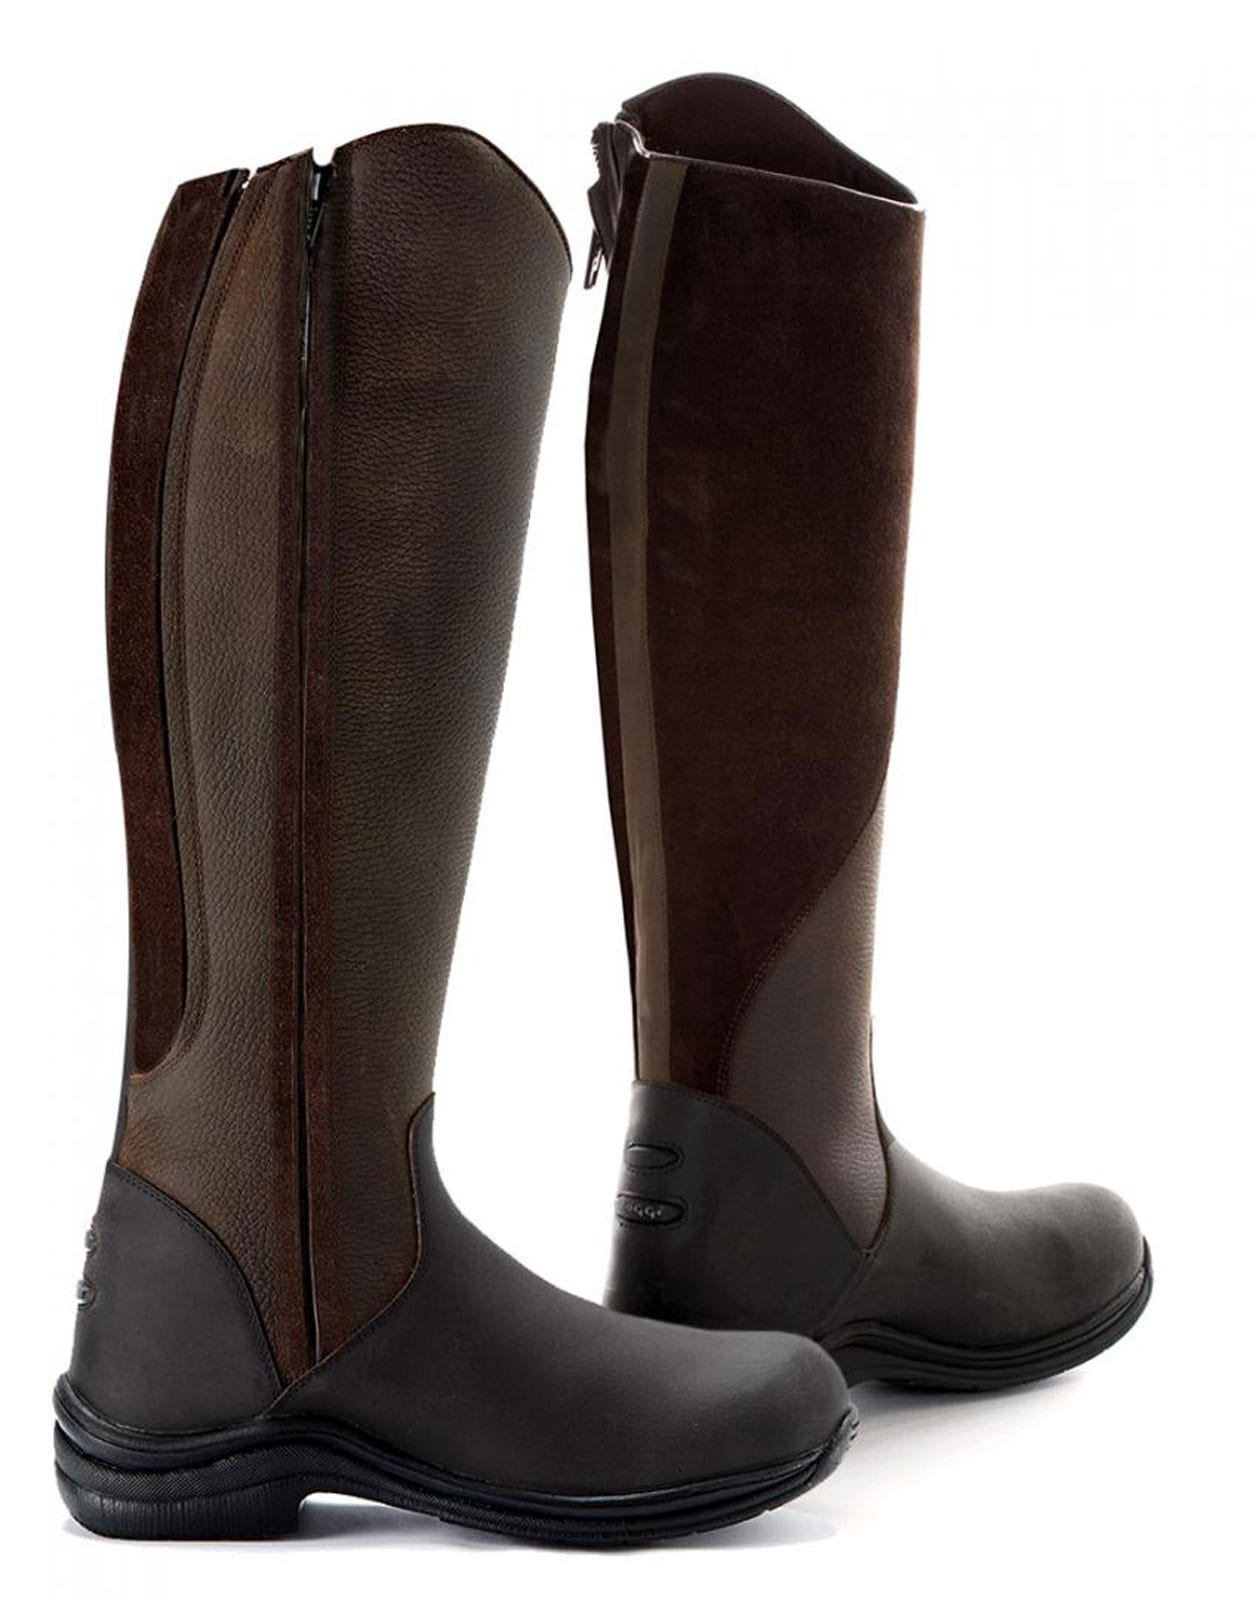 Toggi Quartz Long Riding Boots